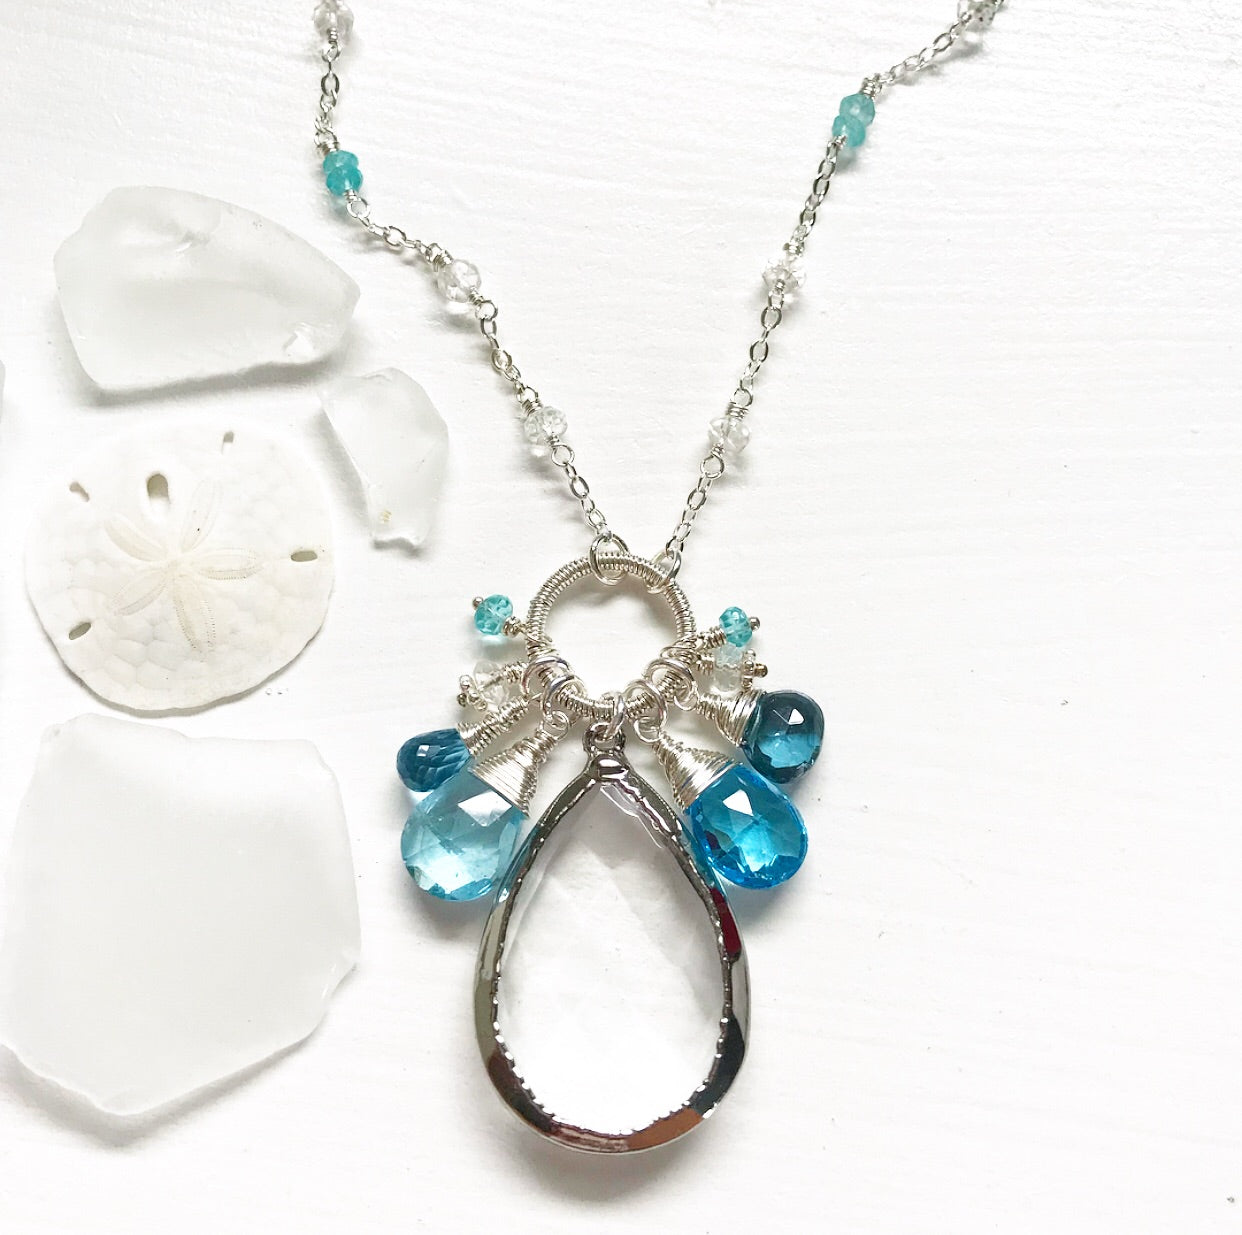 654-One of a Kind Gemstone Drop Necklace